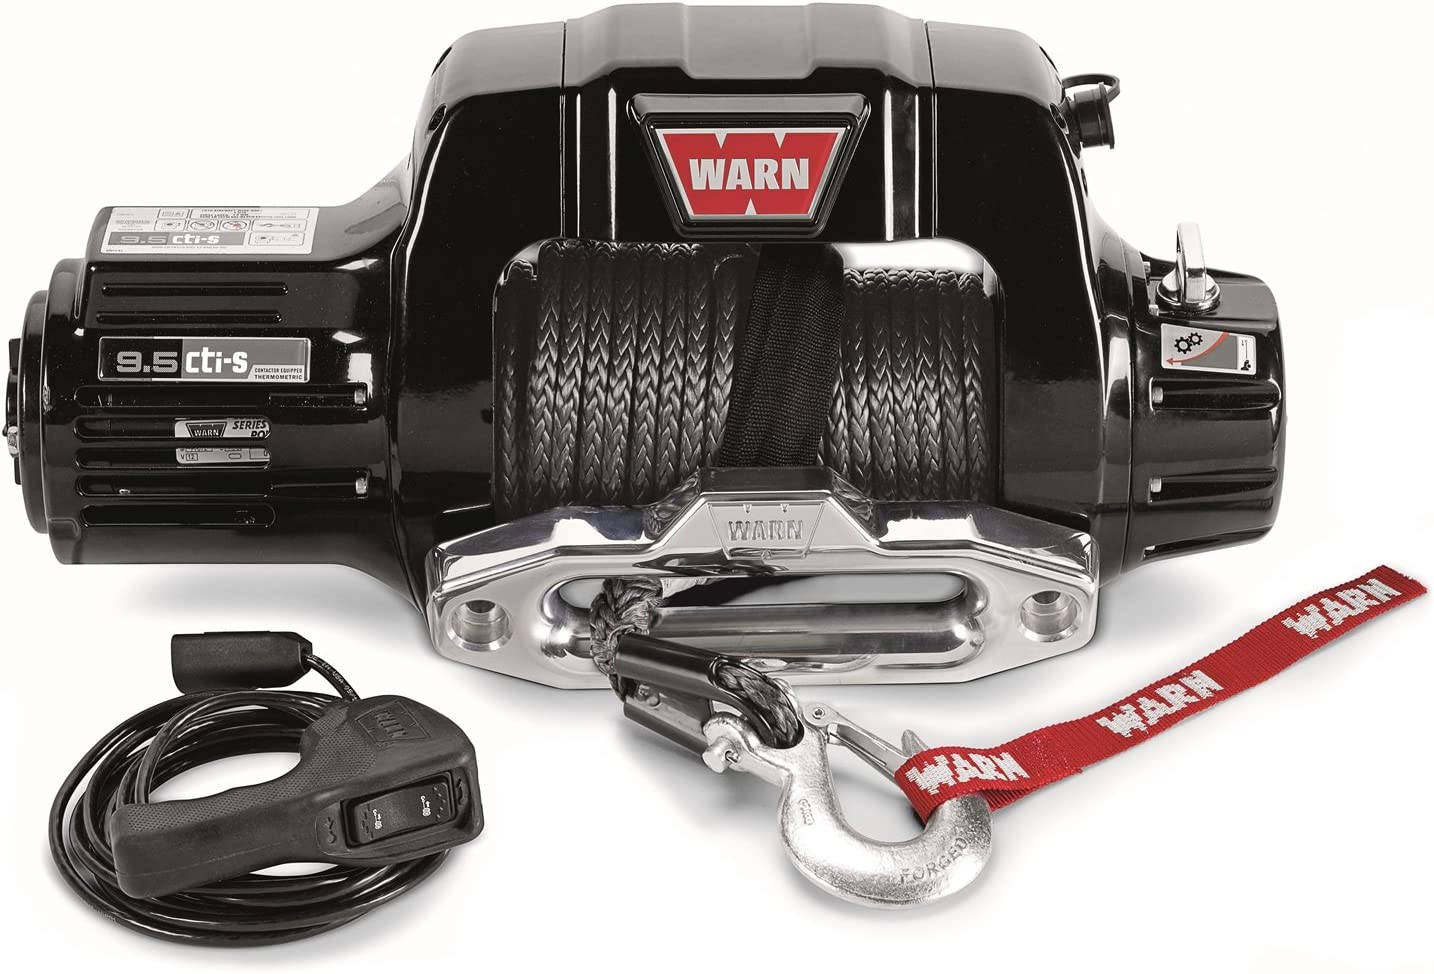 Amazon.com: WARN 97600 9.5cti-s Electric 12V Winch with Synthetic Cable  Rope: 3/8